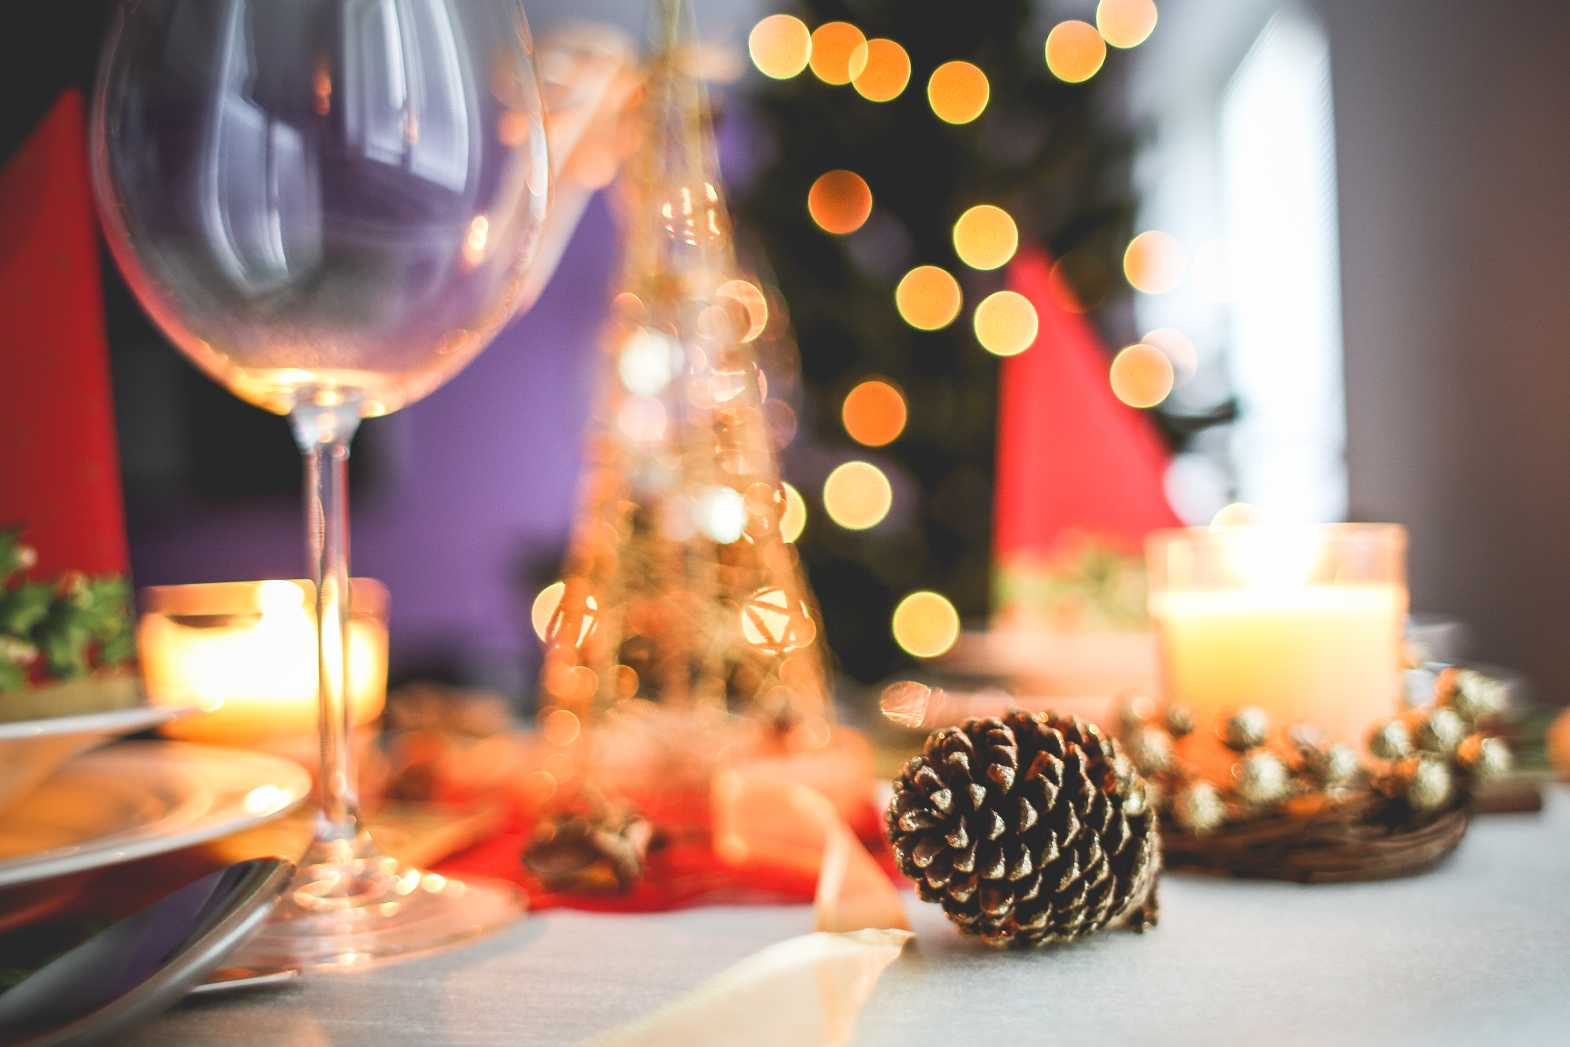 bokeh table setting decoration free stock photo download